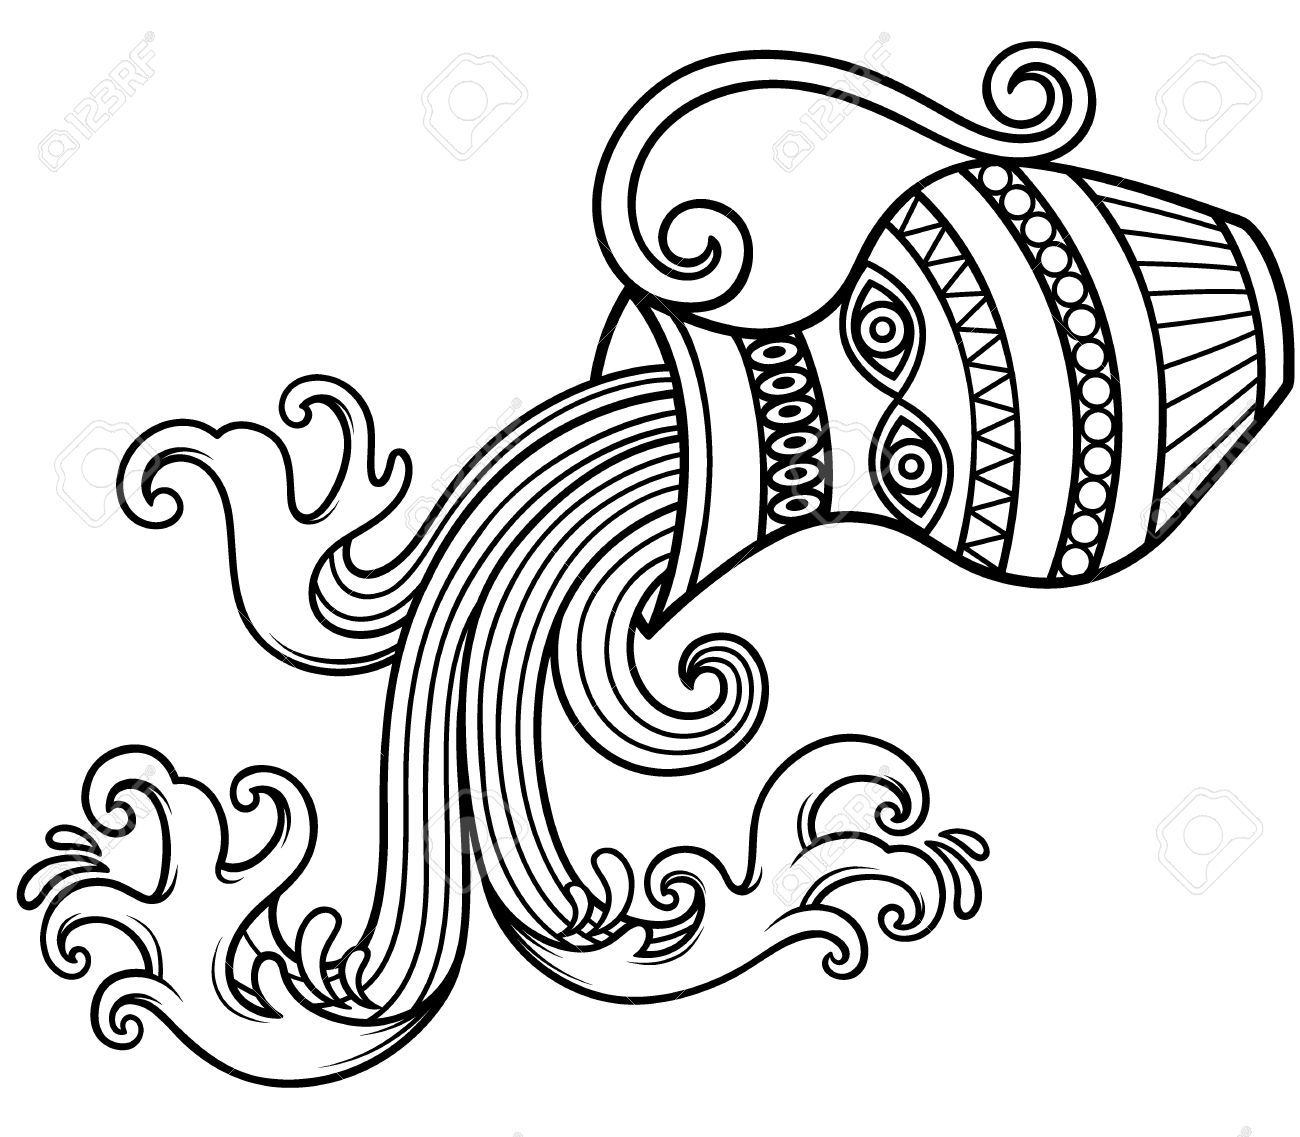 vector illustration of aquarius zodiac sign outline royalty free